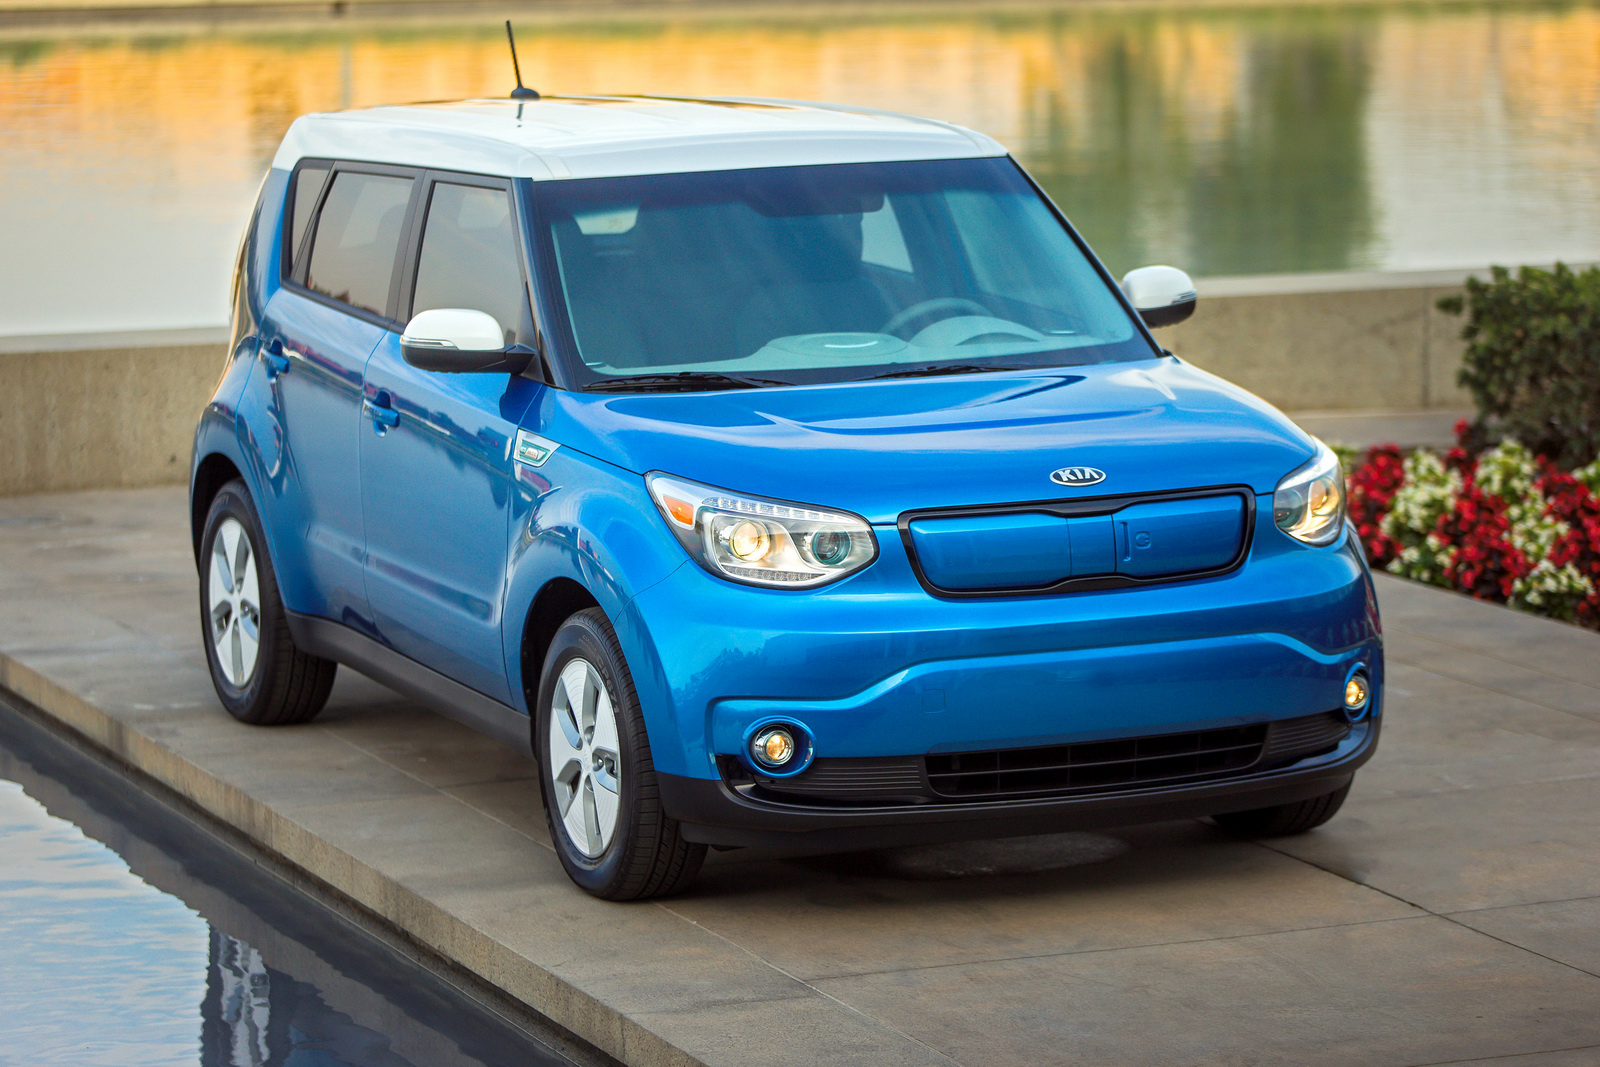 Facelifted Kia Soul EV To Get A Boost In Range | Carscoops